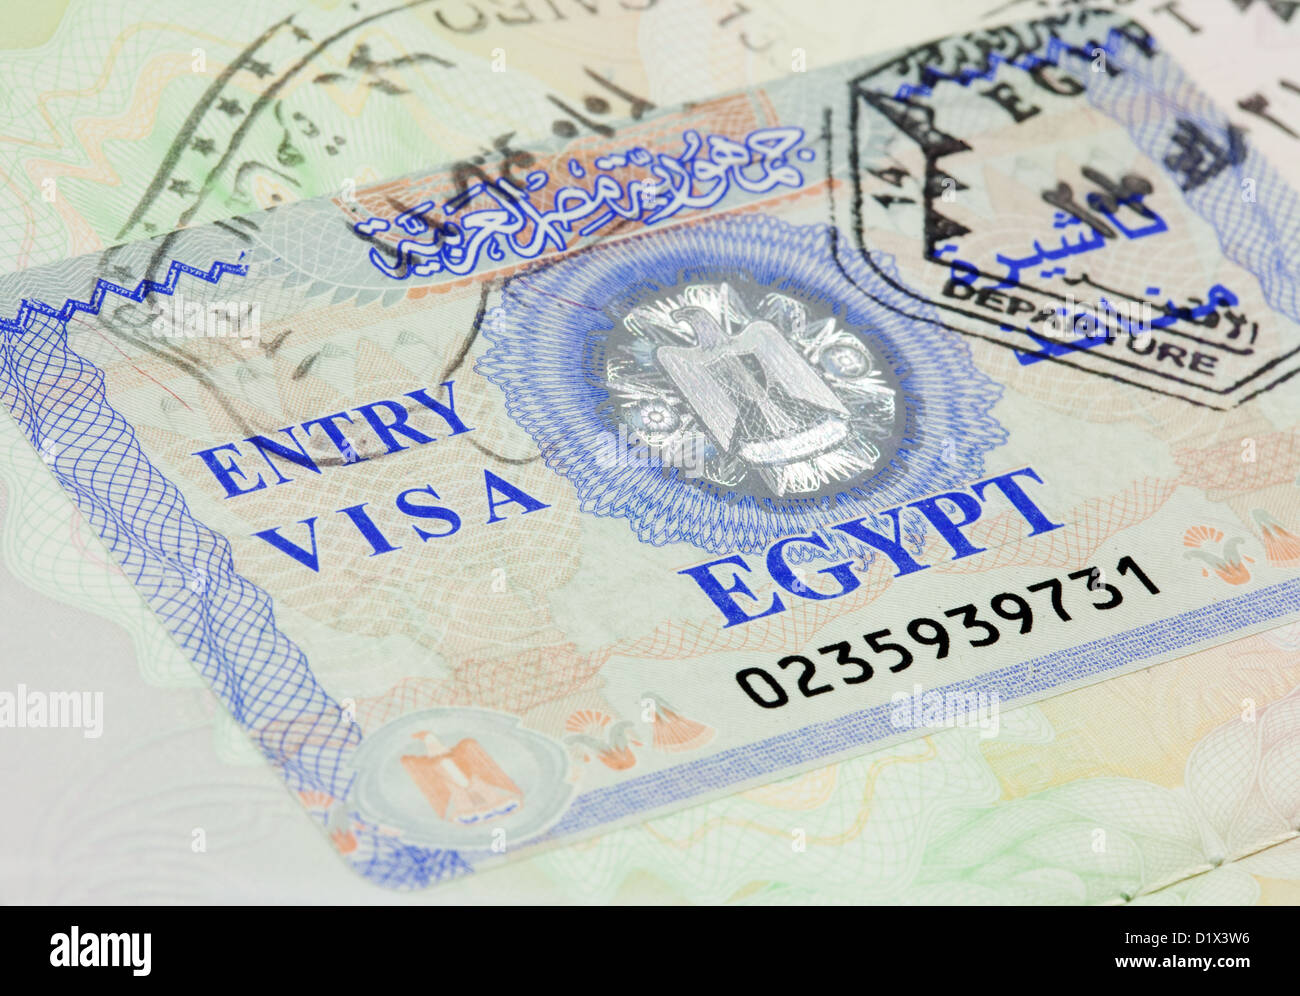 Egypt entry visa for holiday travel in a UK passport - Stock Image